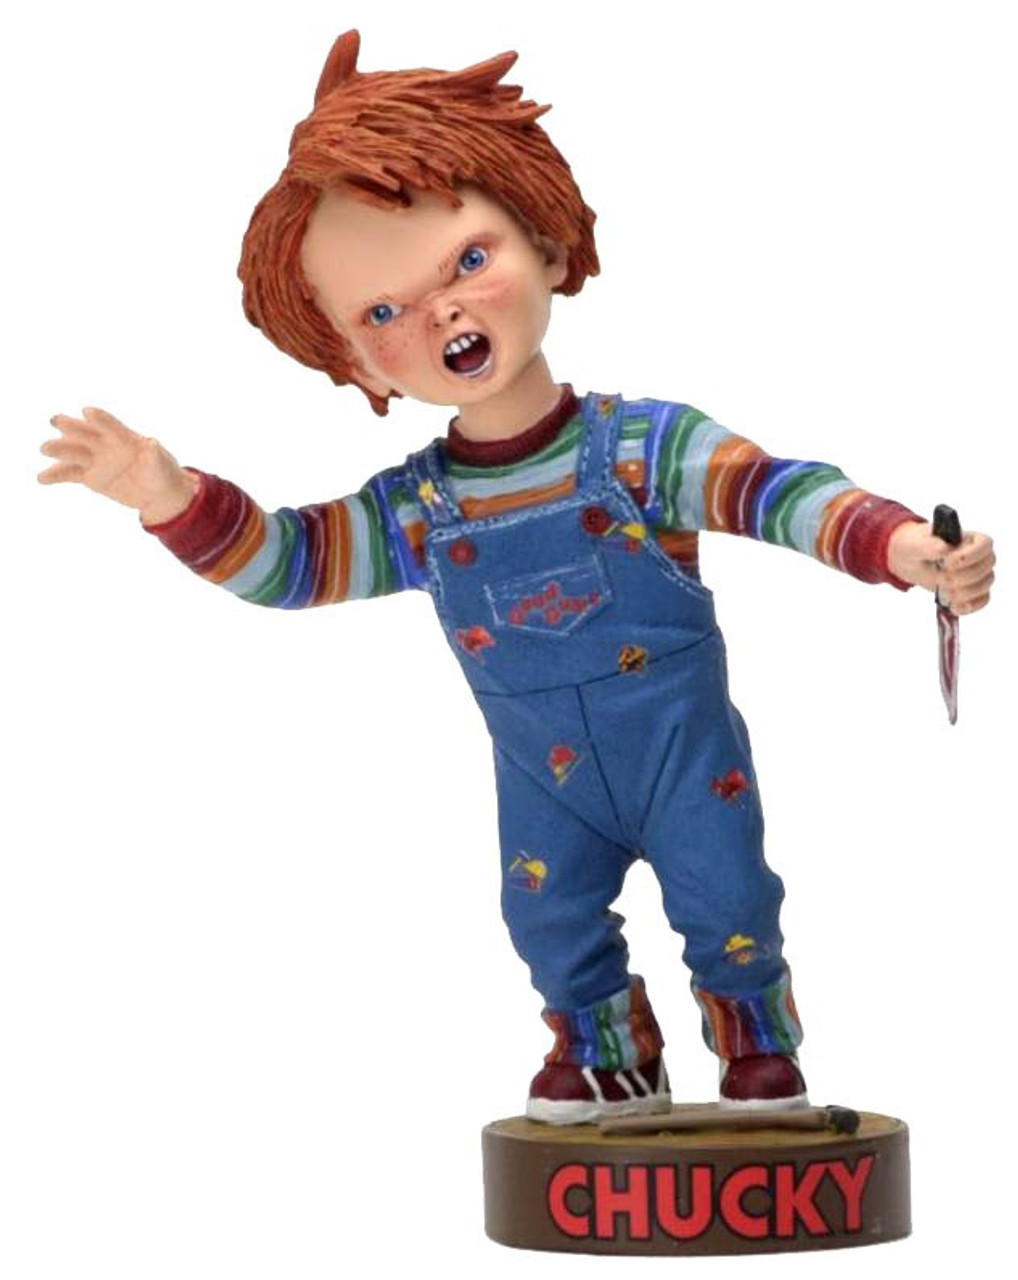 """Chucky 4"""" Ultimate Figure With Accessories By NECA Official Childs Play"""